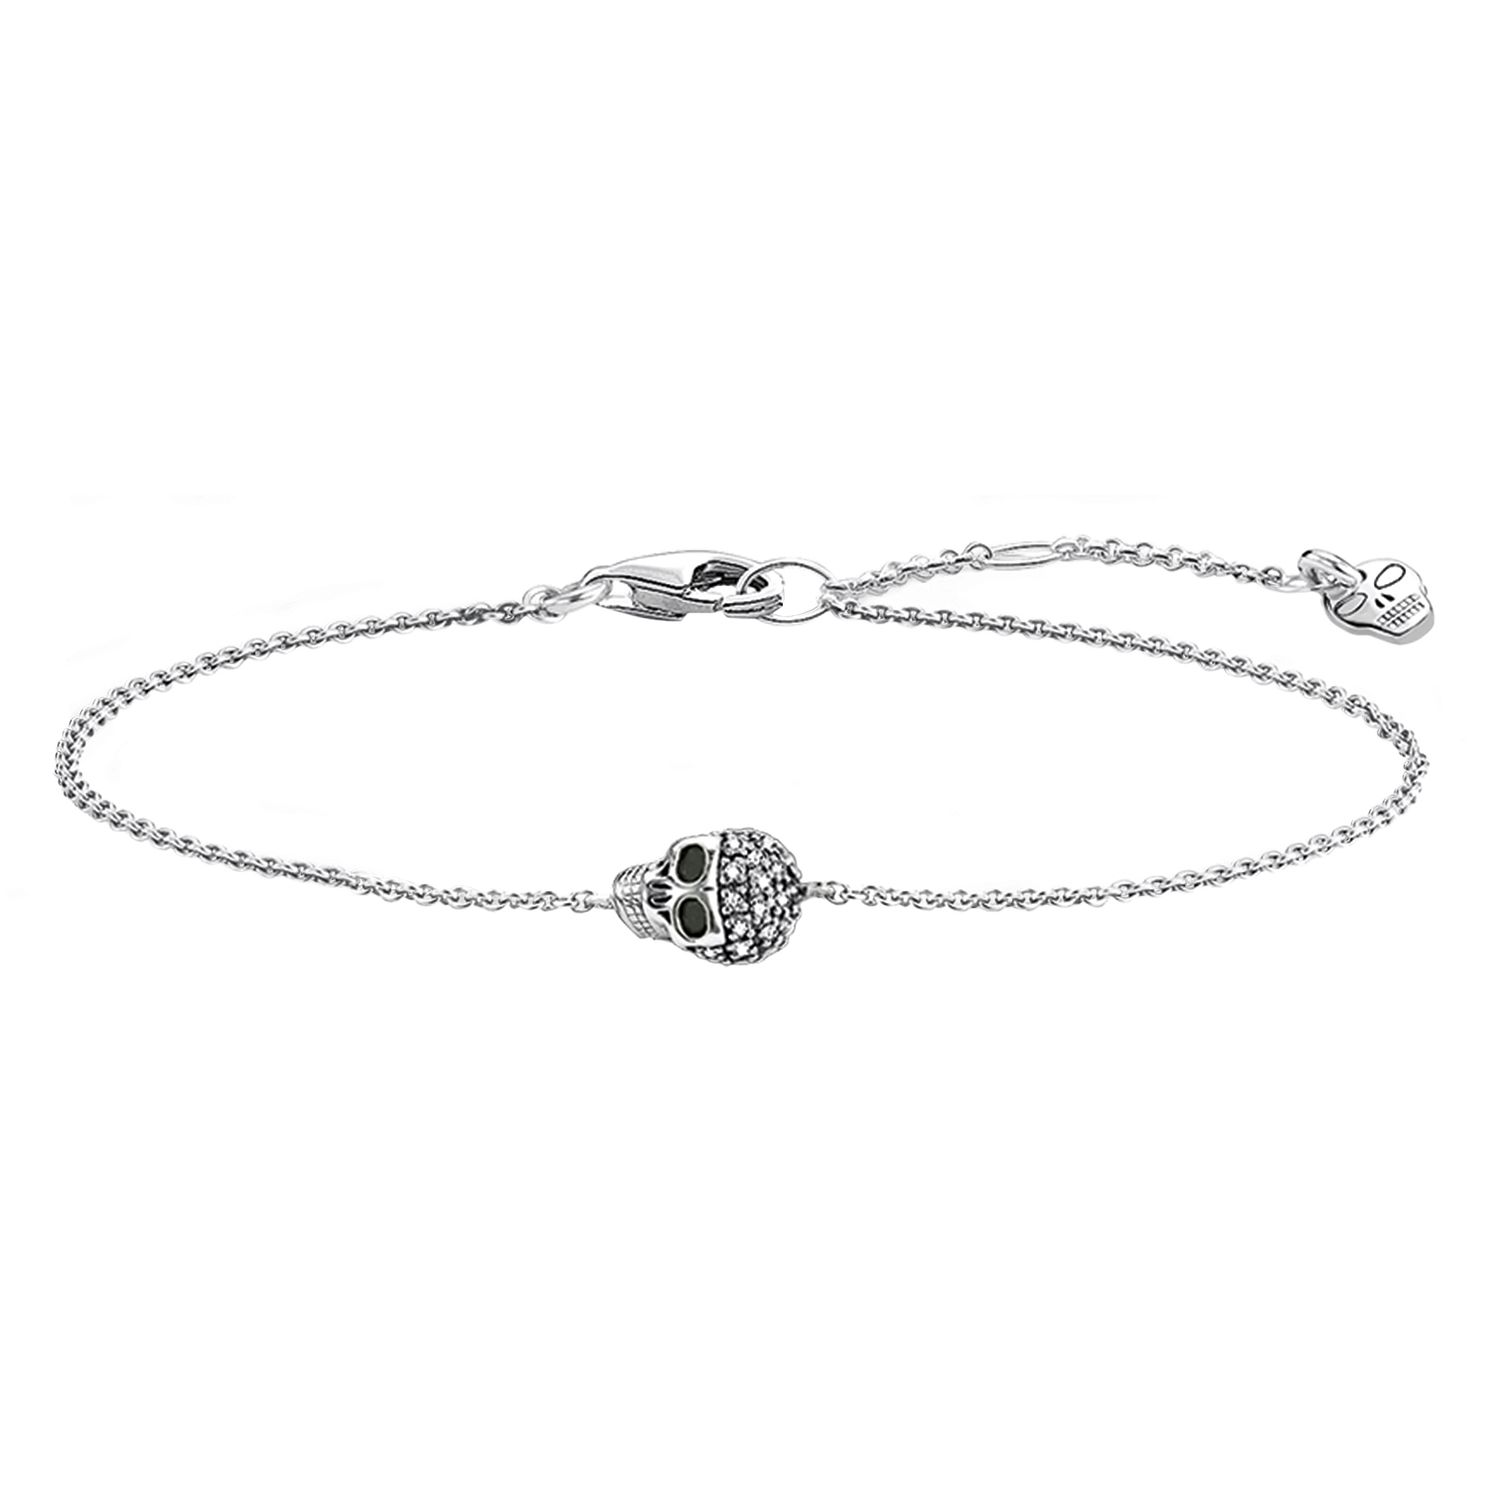 Thomas Sabo Rebel At Heart Silver Diamond Skull Bracelet - Product number 6391664